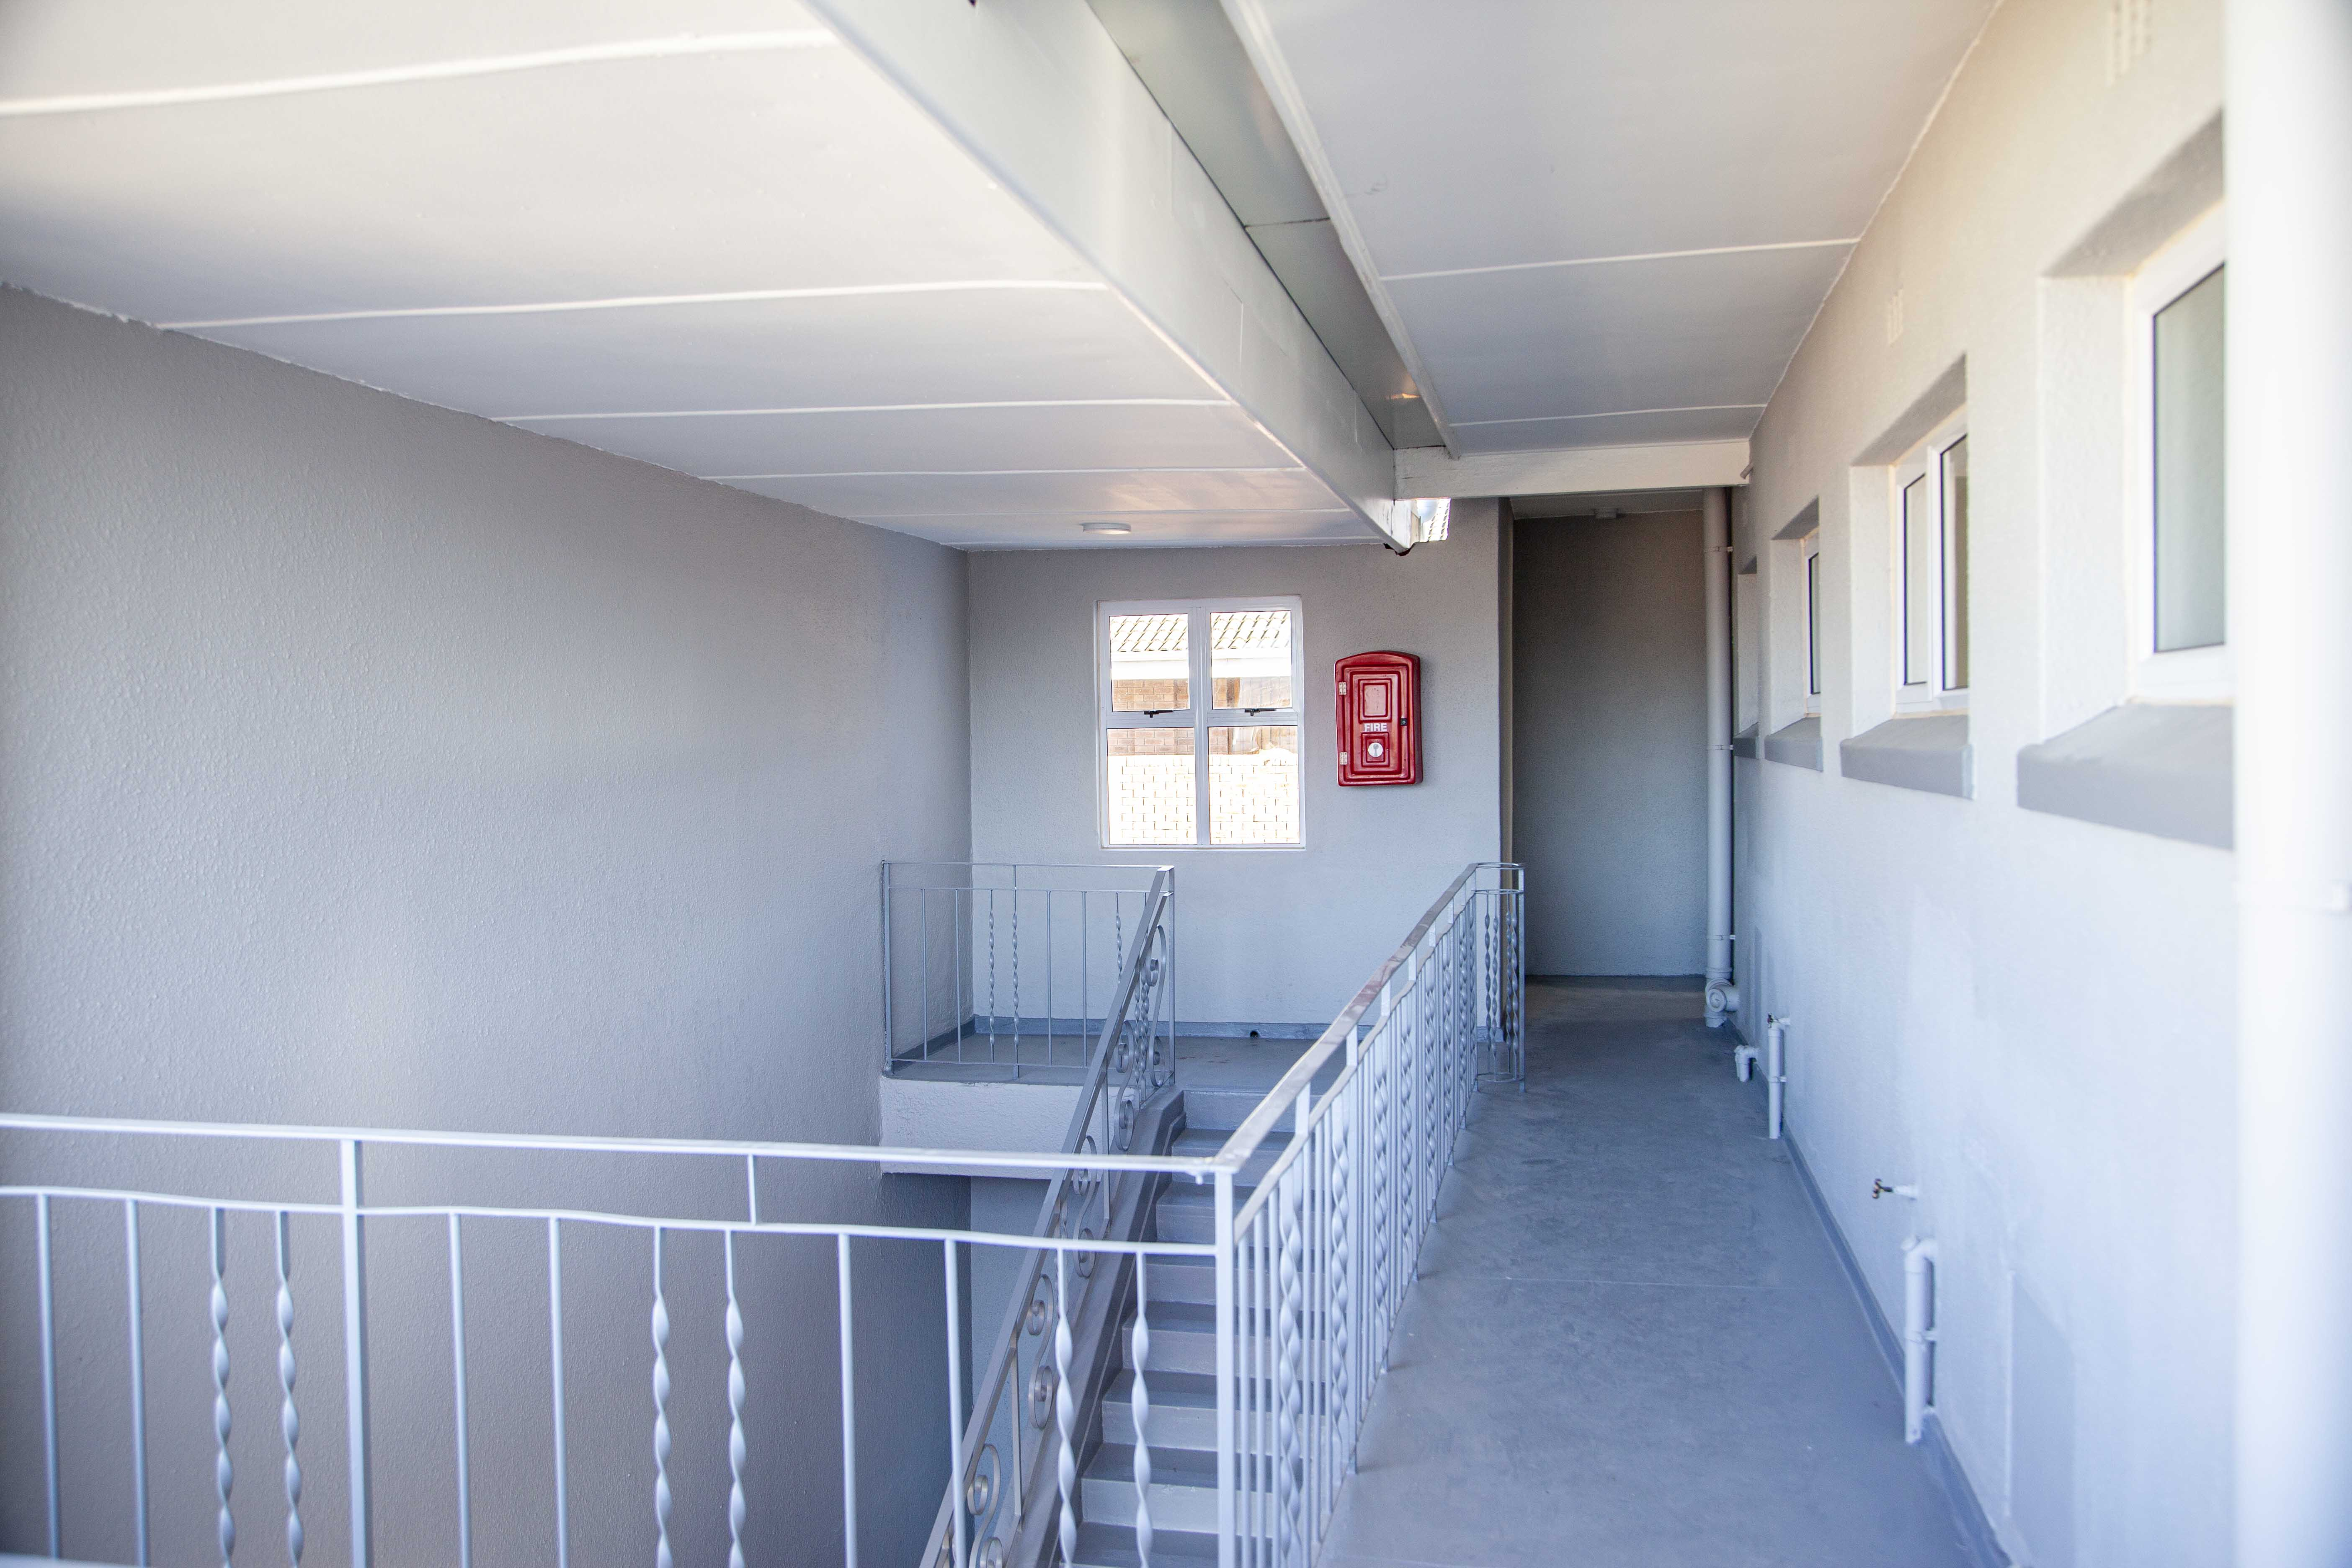 Rabako Court Indawo Building Refurbishment, painting, waterproofing, construction, redecoration